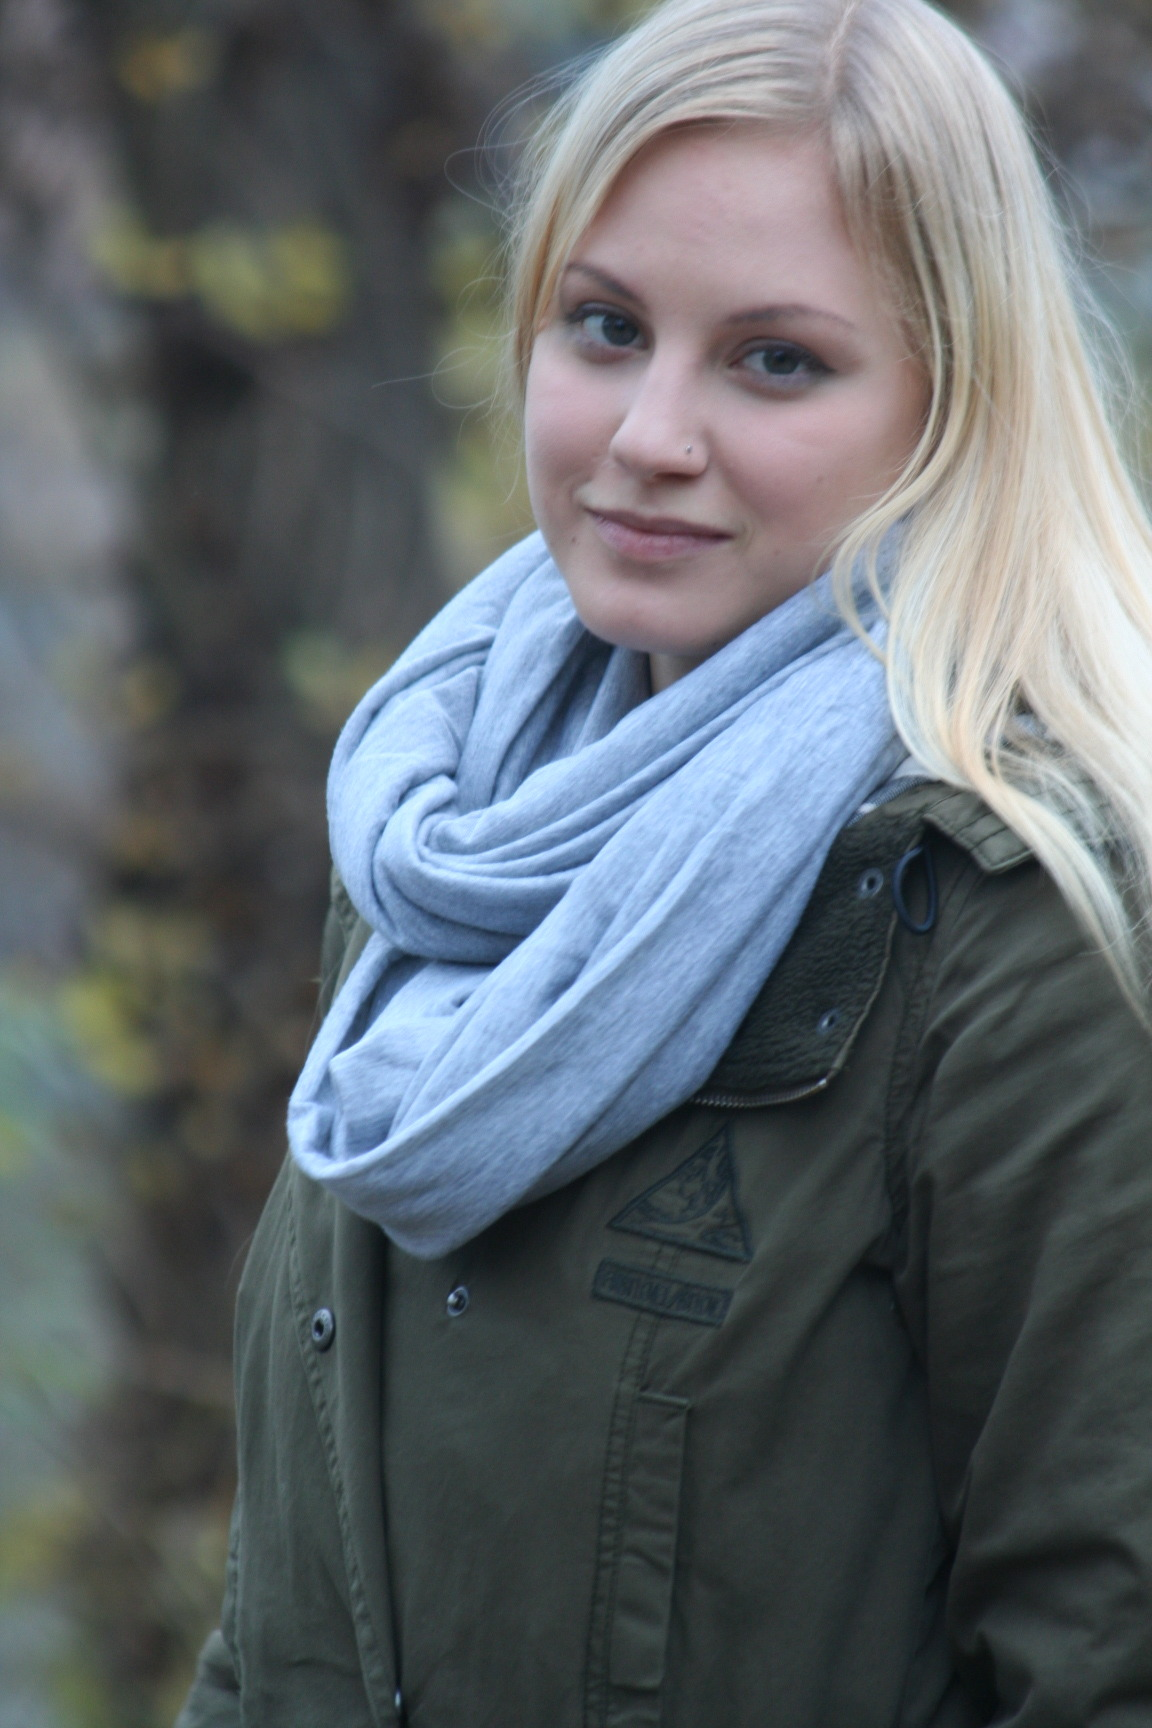 Shooting am Donaukanal (November 2012) /w Kathi B.